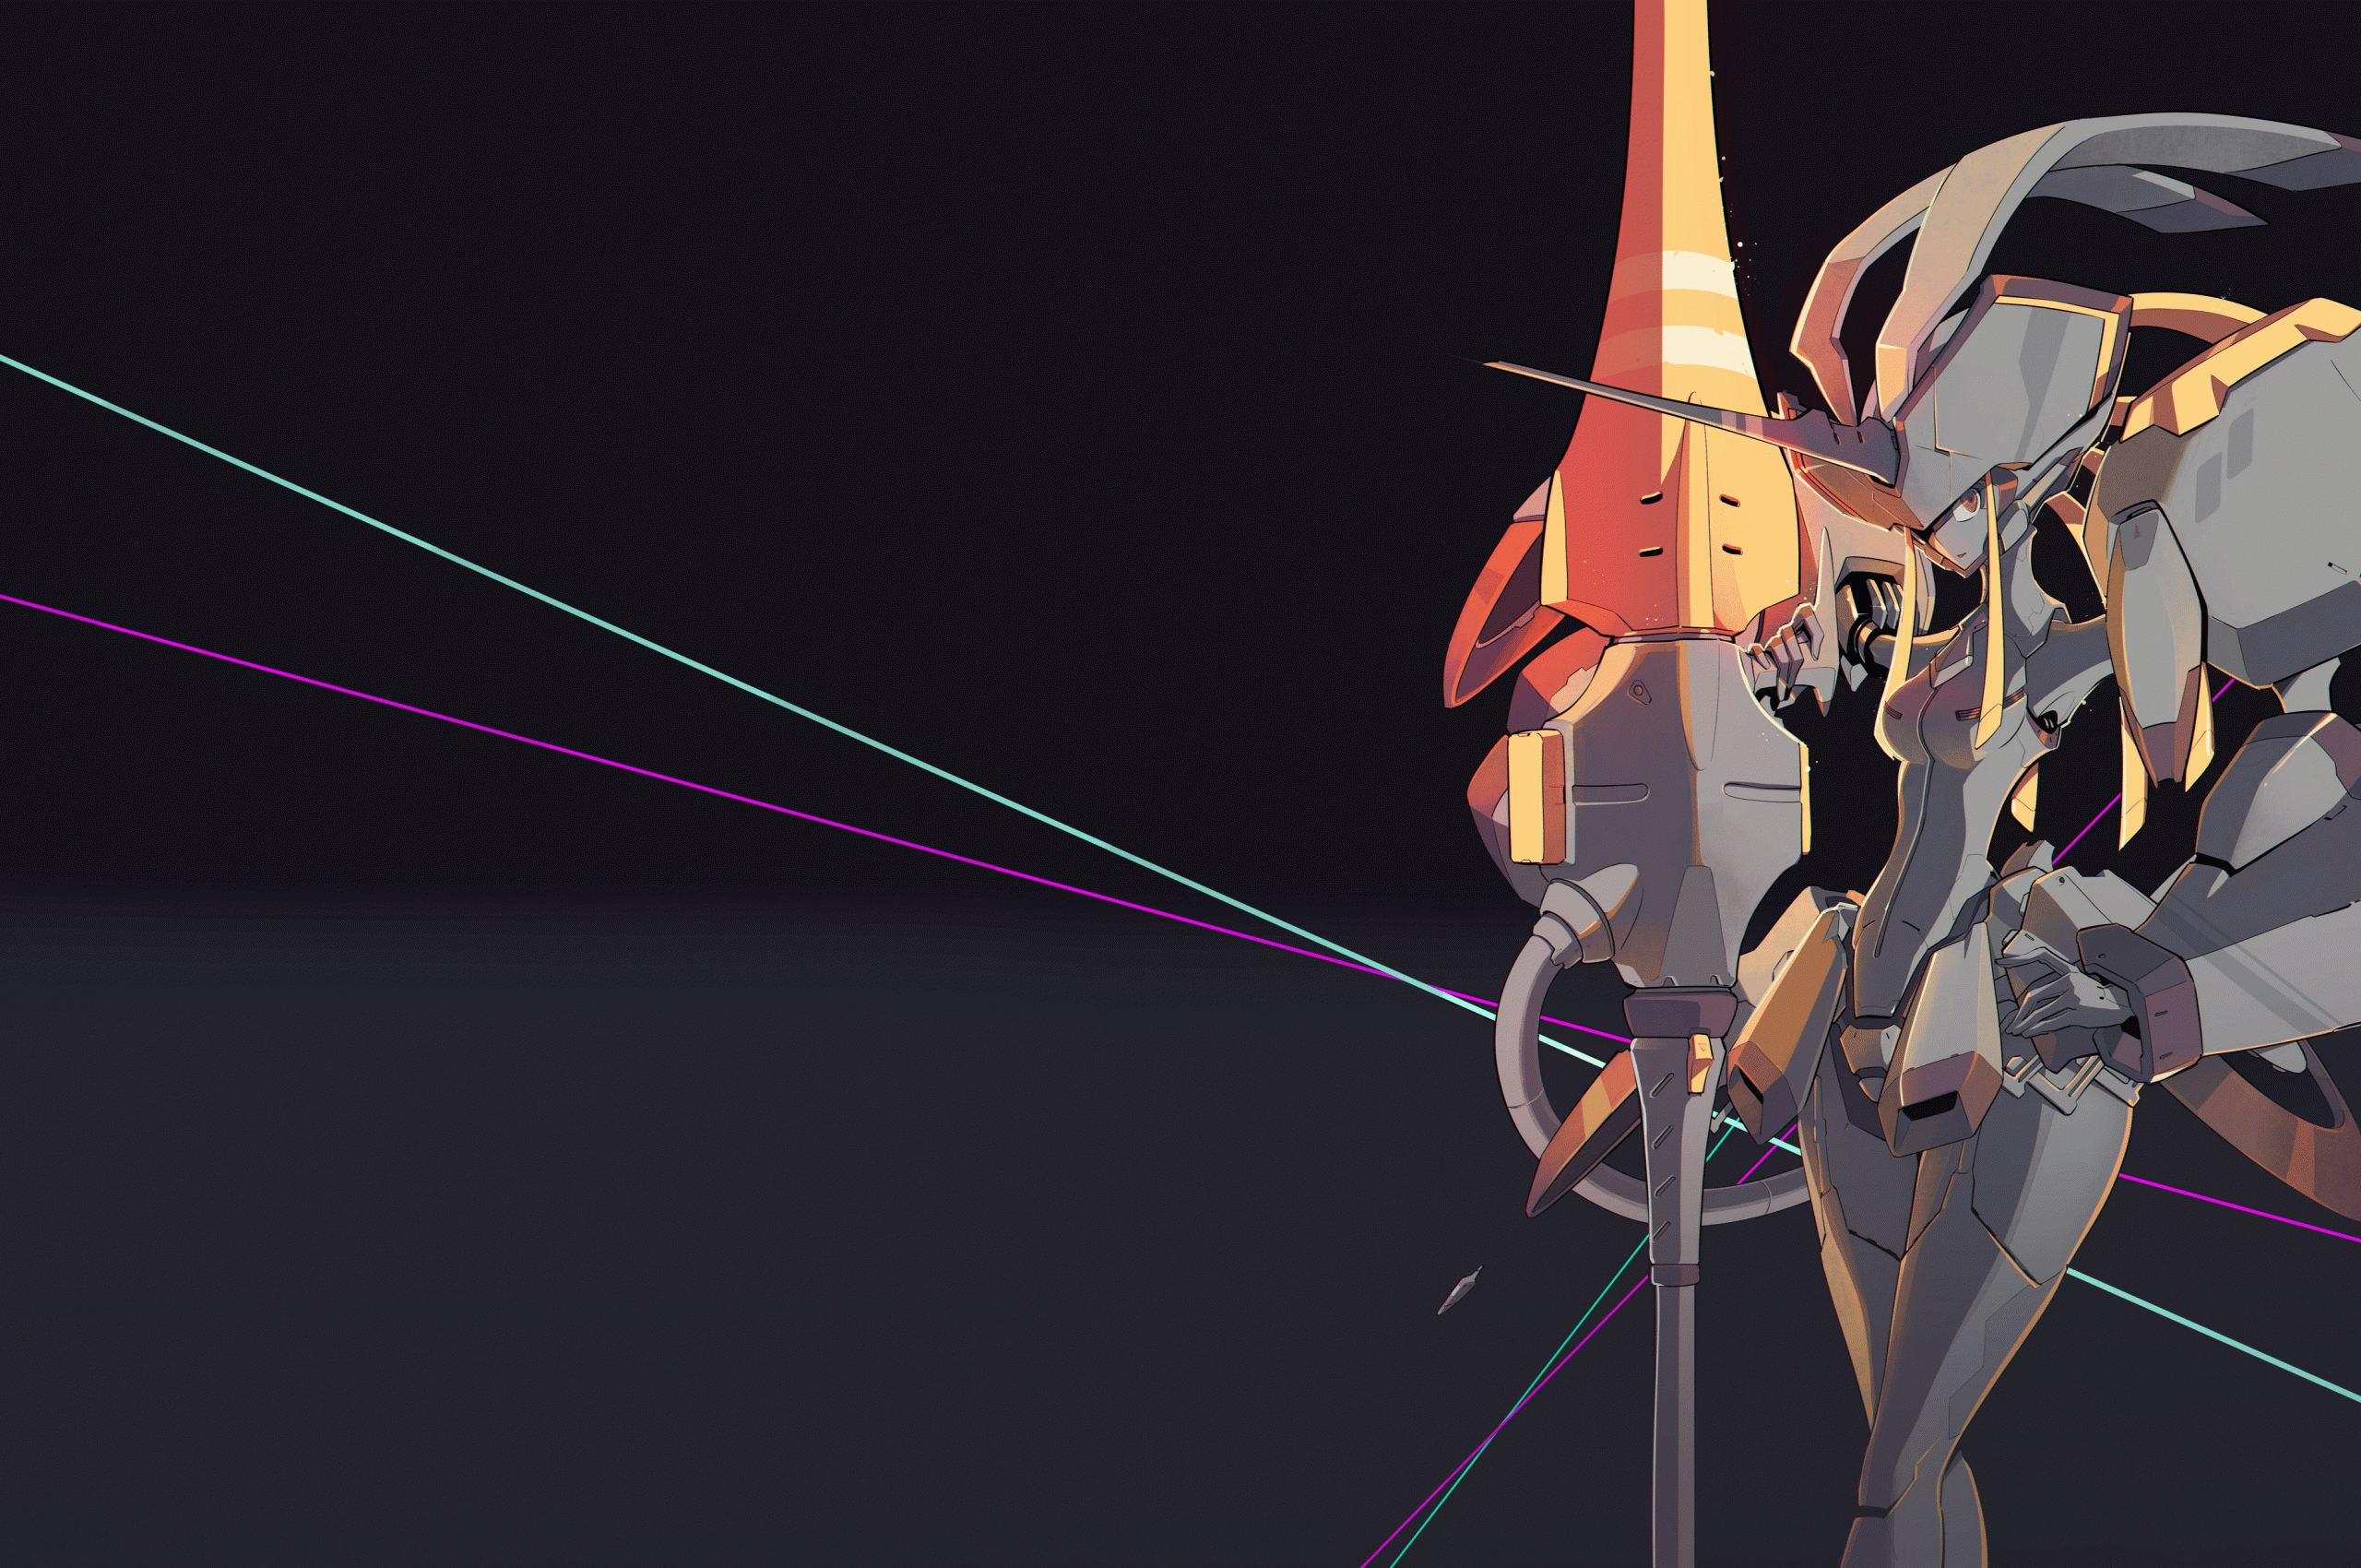 Free Download Darling In The Franxx Key Visual Edit Hd Wallpaper From 4425x2489 For Your Desktop Mobile Tablet Explore 37 Darling In The Franxx Wallpapers Darling In The Franxx